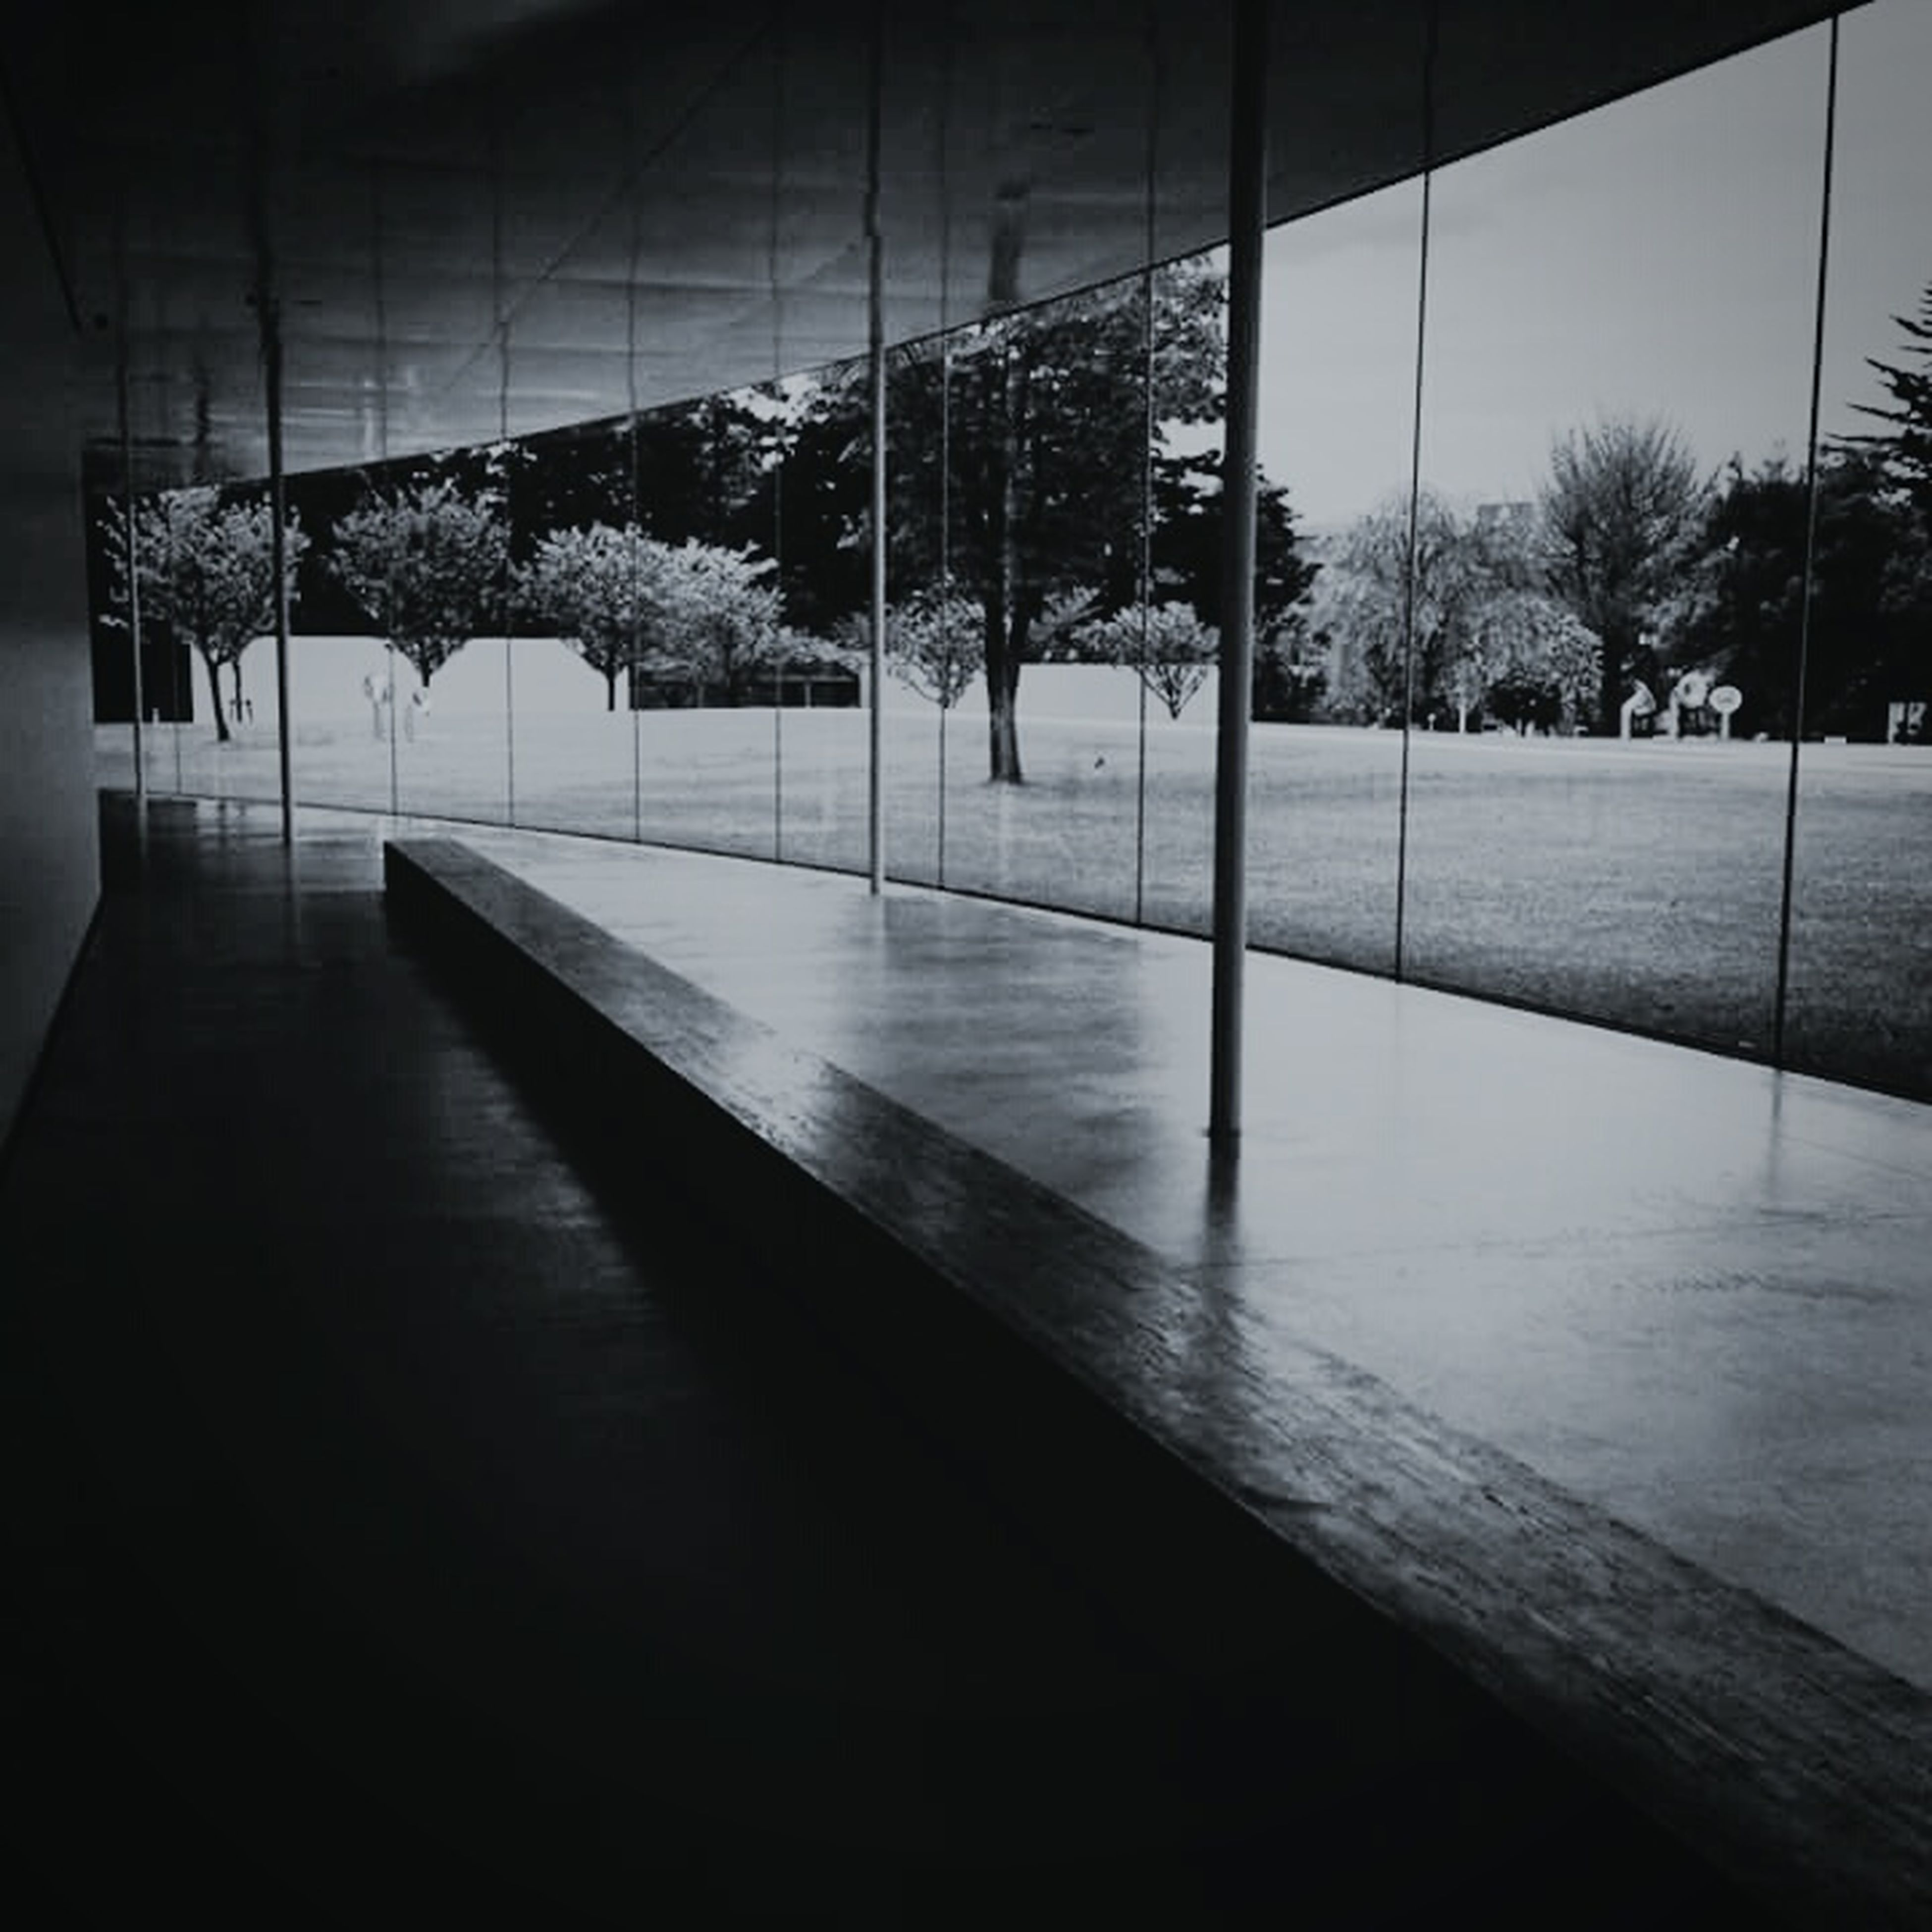 tree, indoors, built structure, architecture, empty, railing, shadow, absence, the way forward, sunlight, architectural column, day, no people, park - man made space, window, flooring, glass - material, fence, metal, incidental people